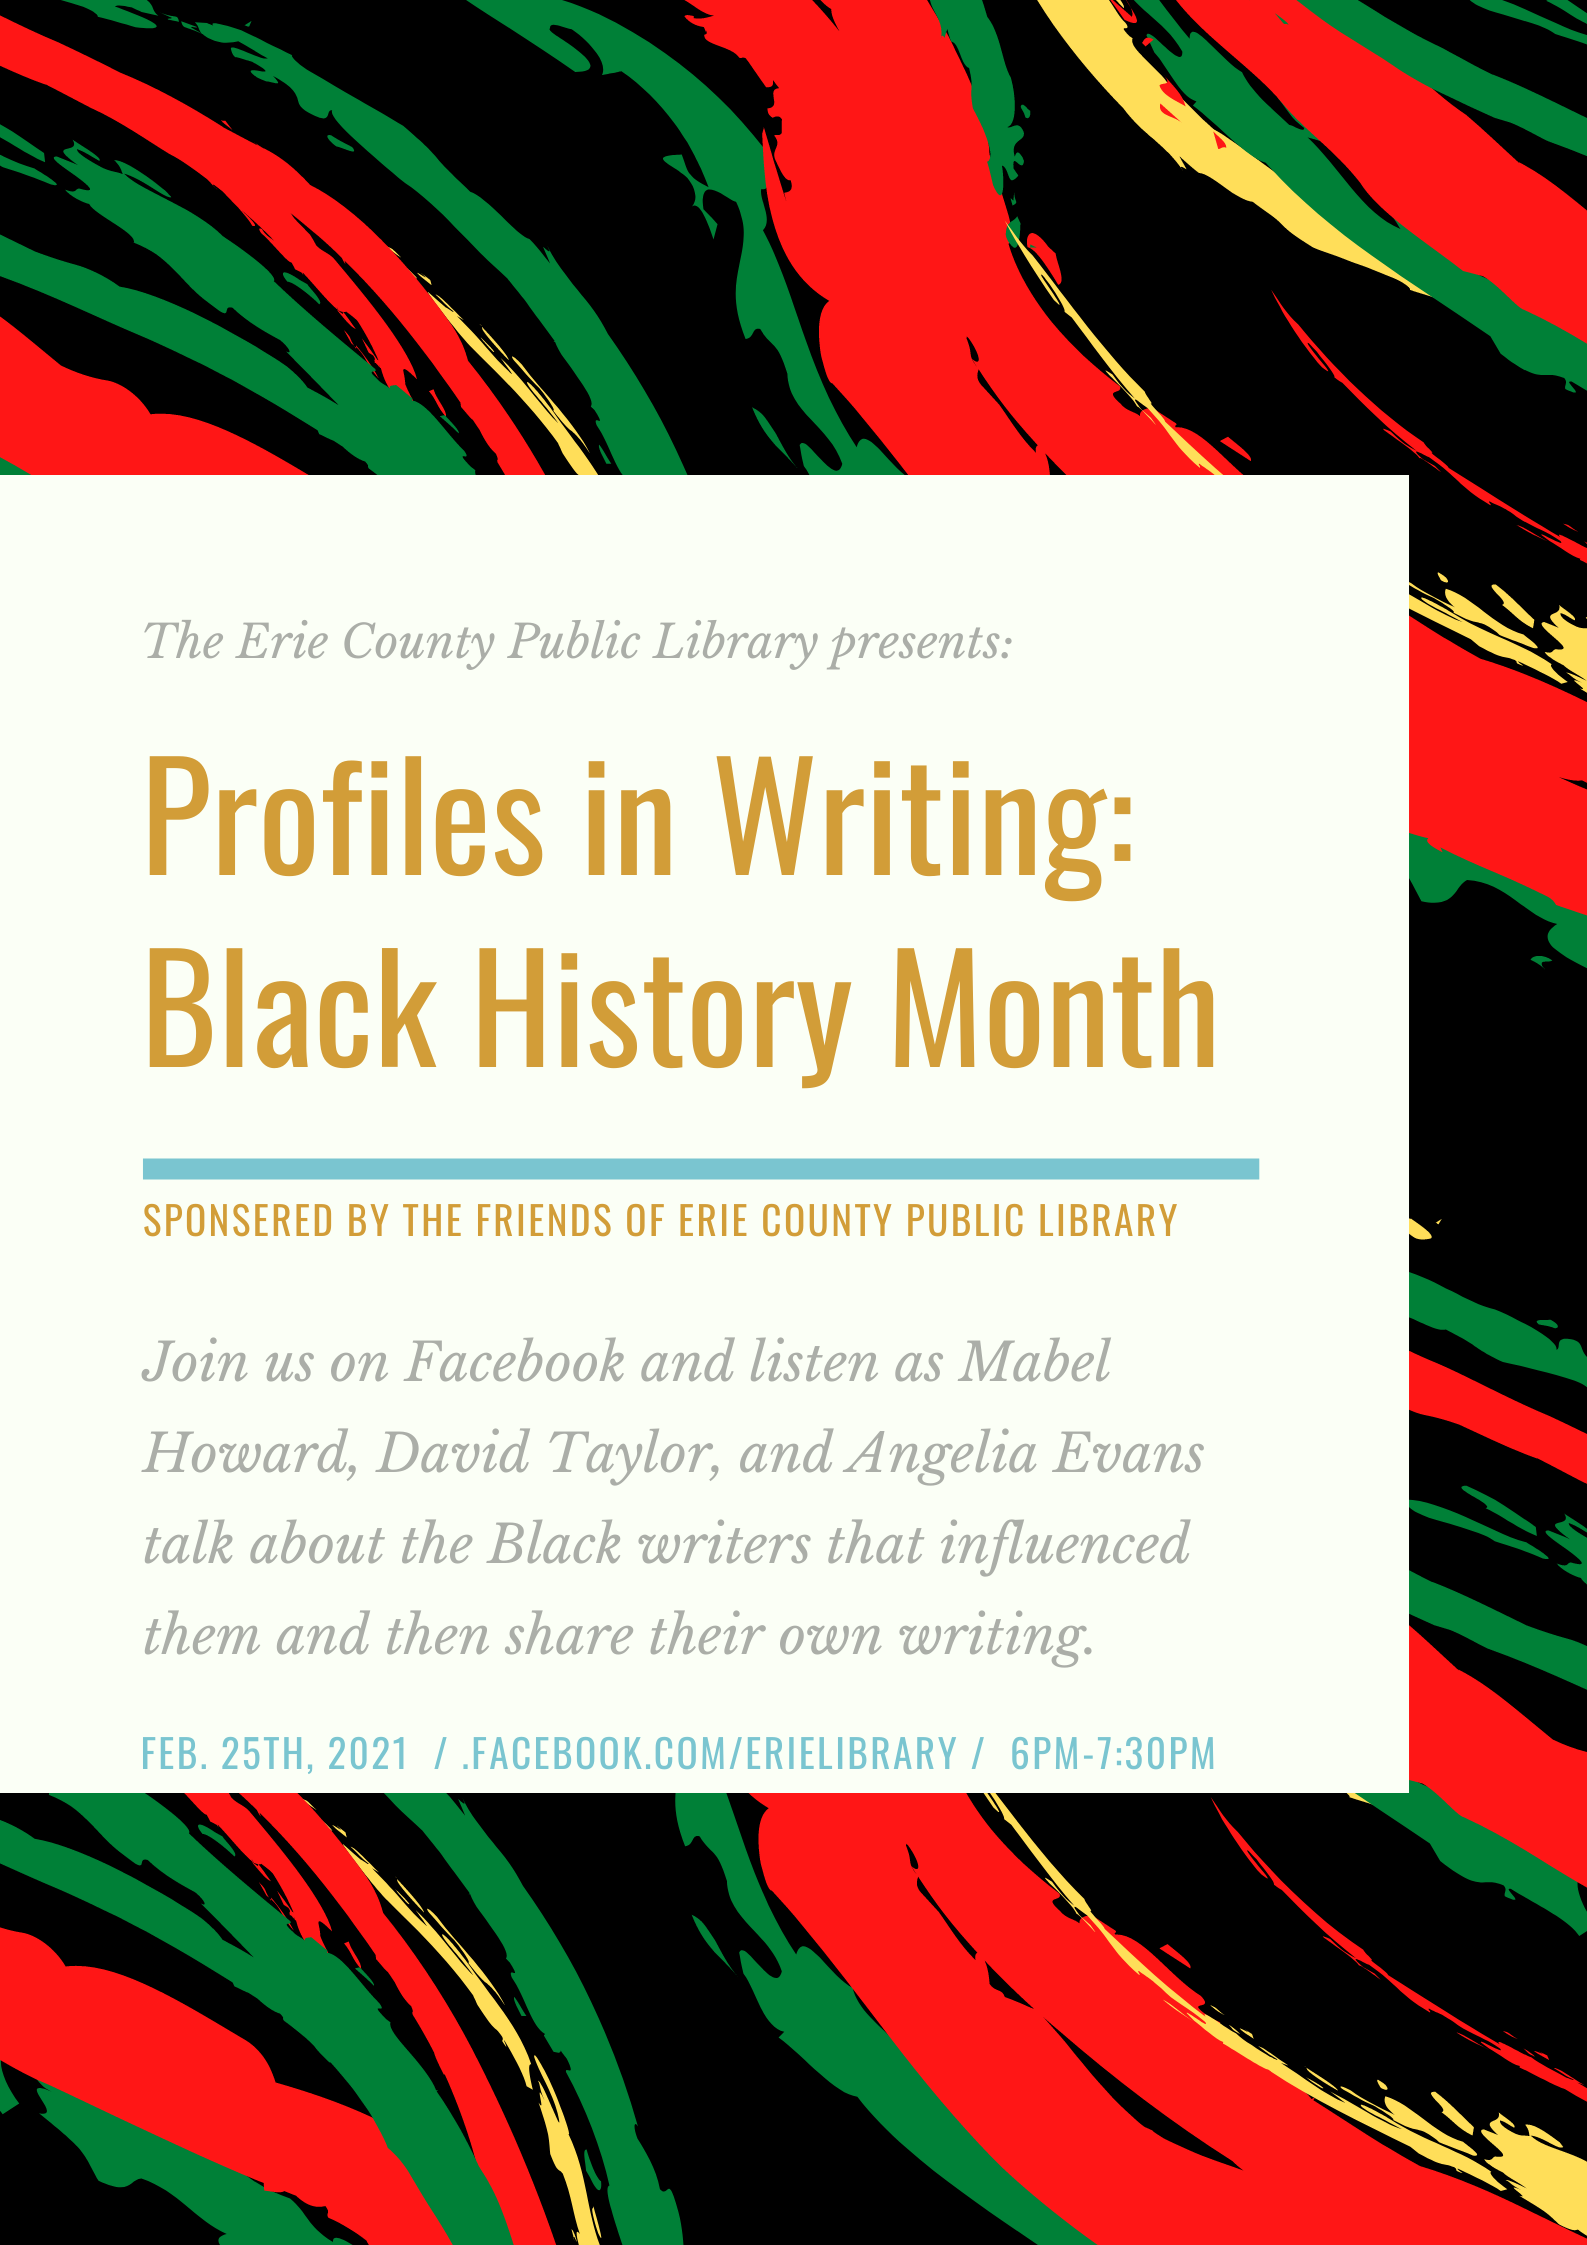 Profiles in Writing: Black History Month